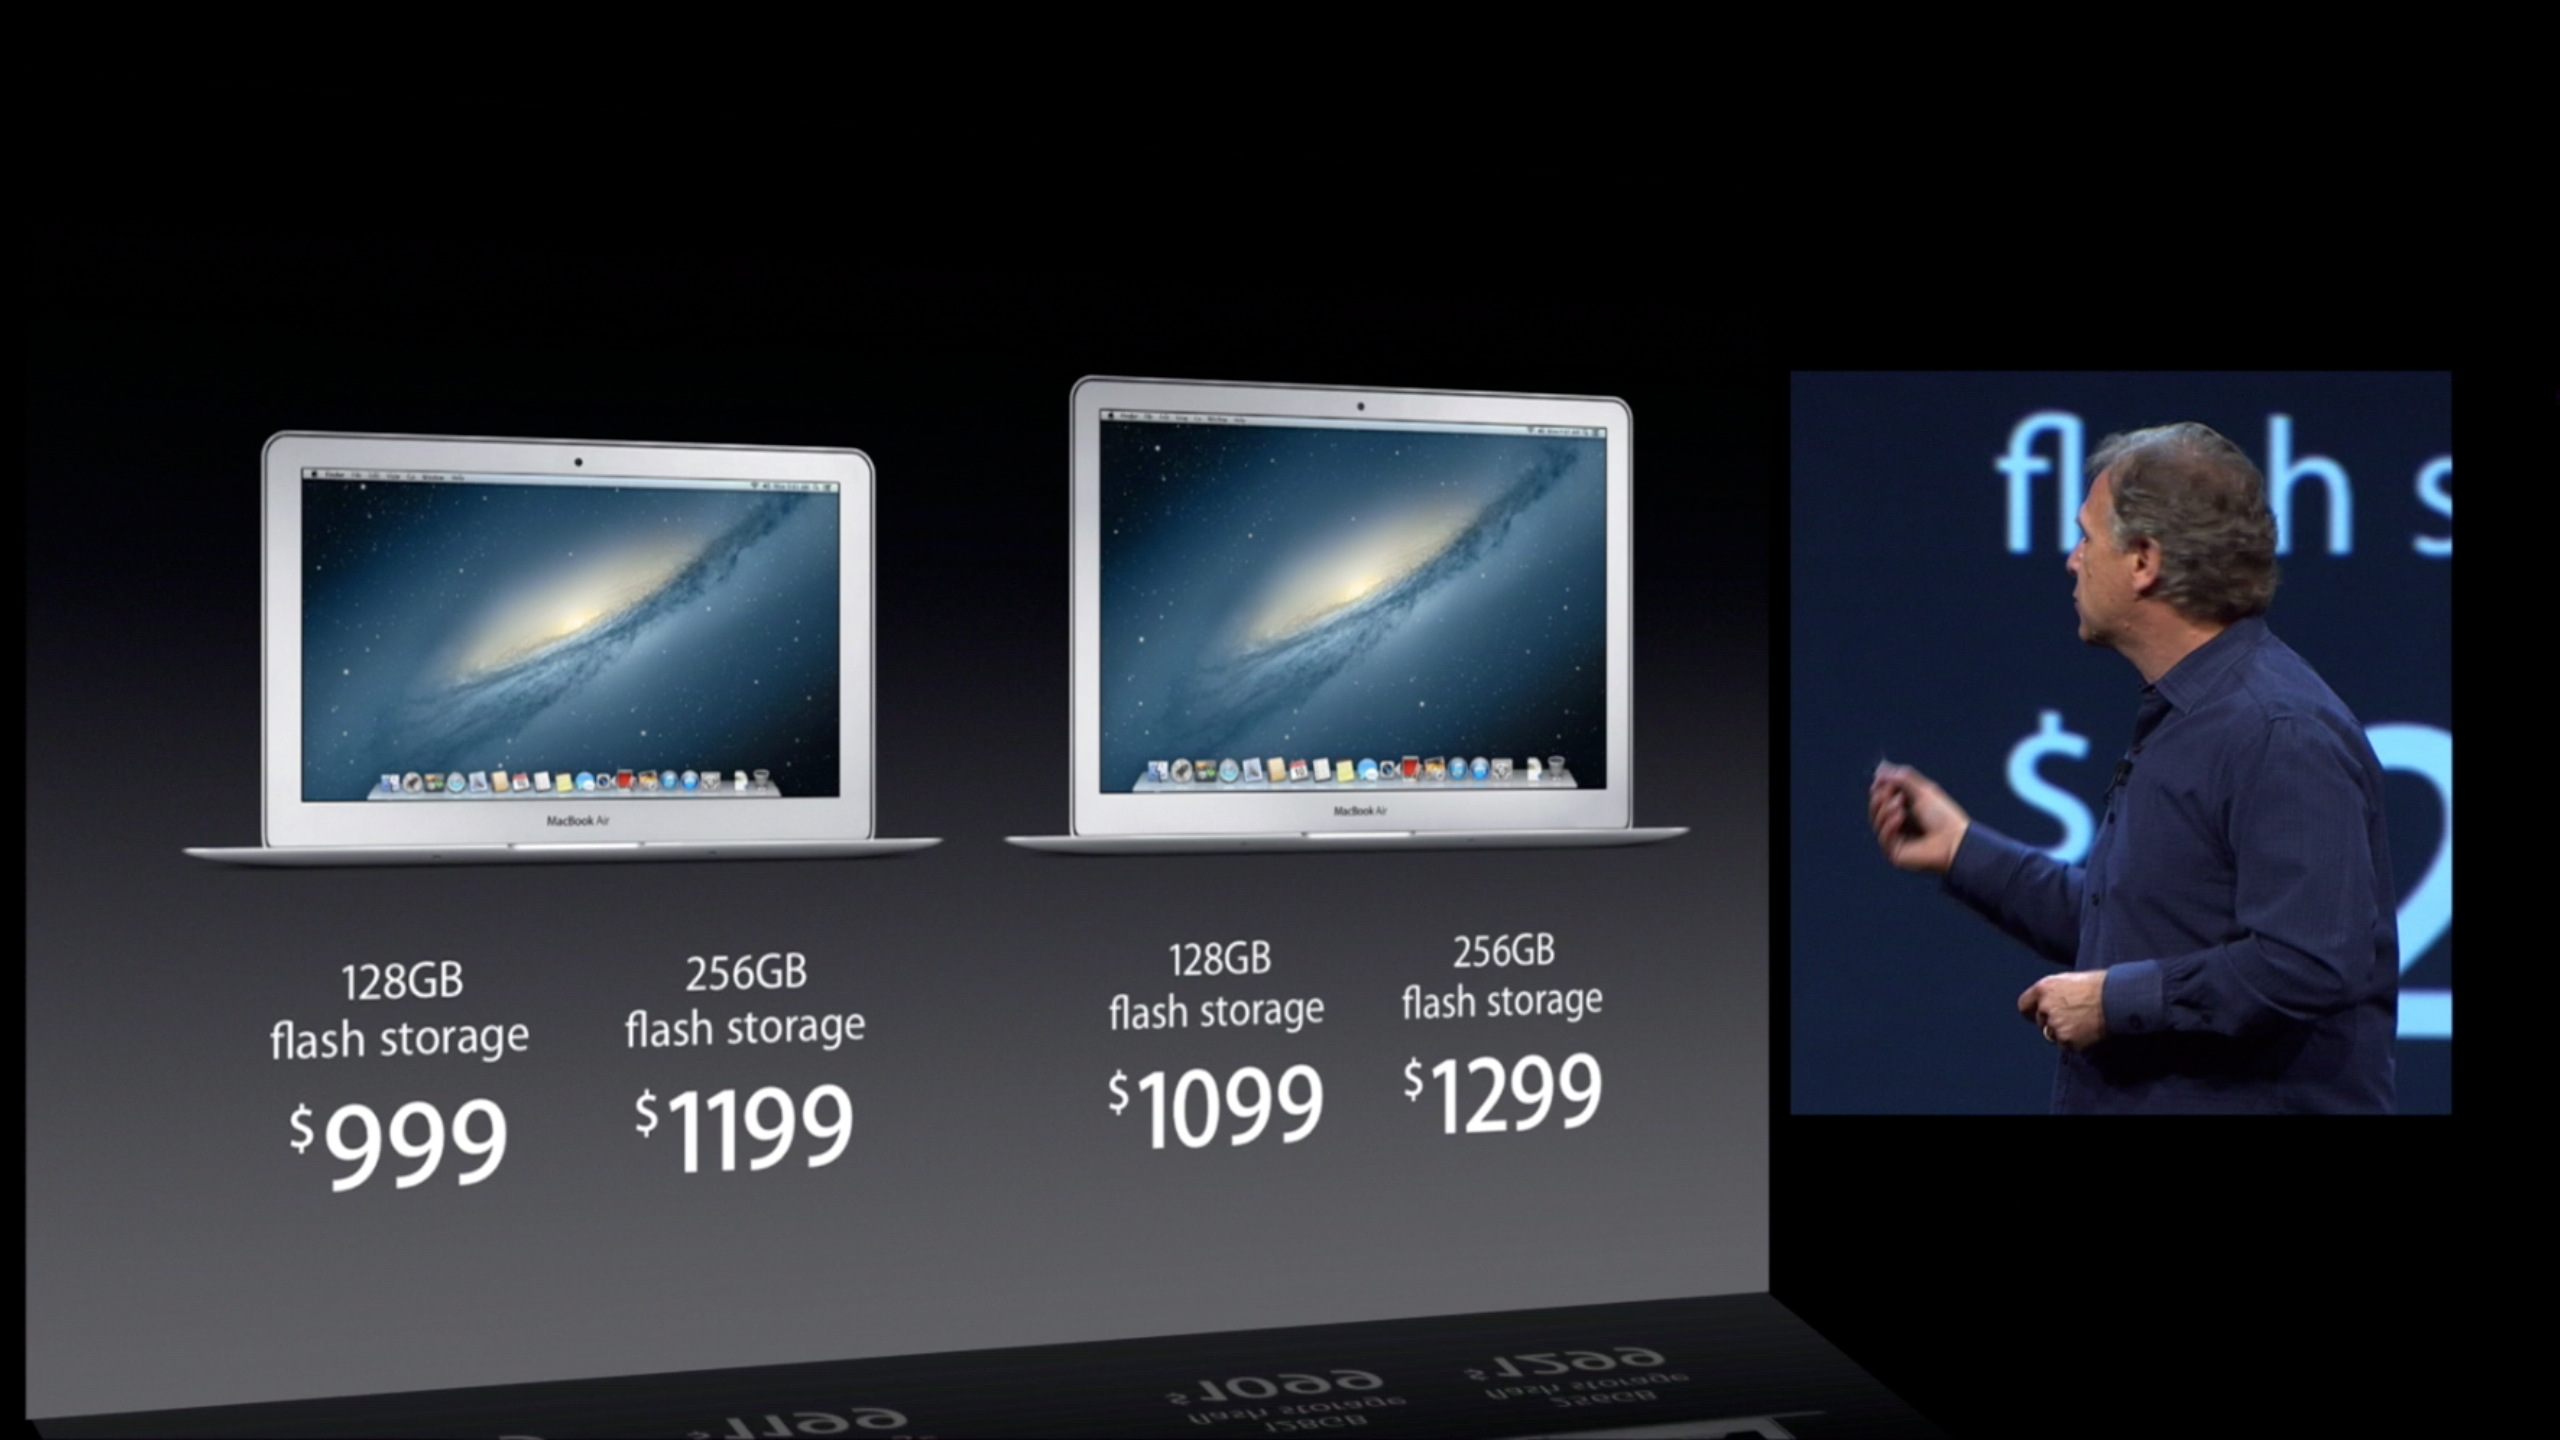 WWDC 2013 - MacBook Air